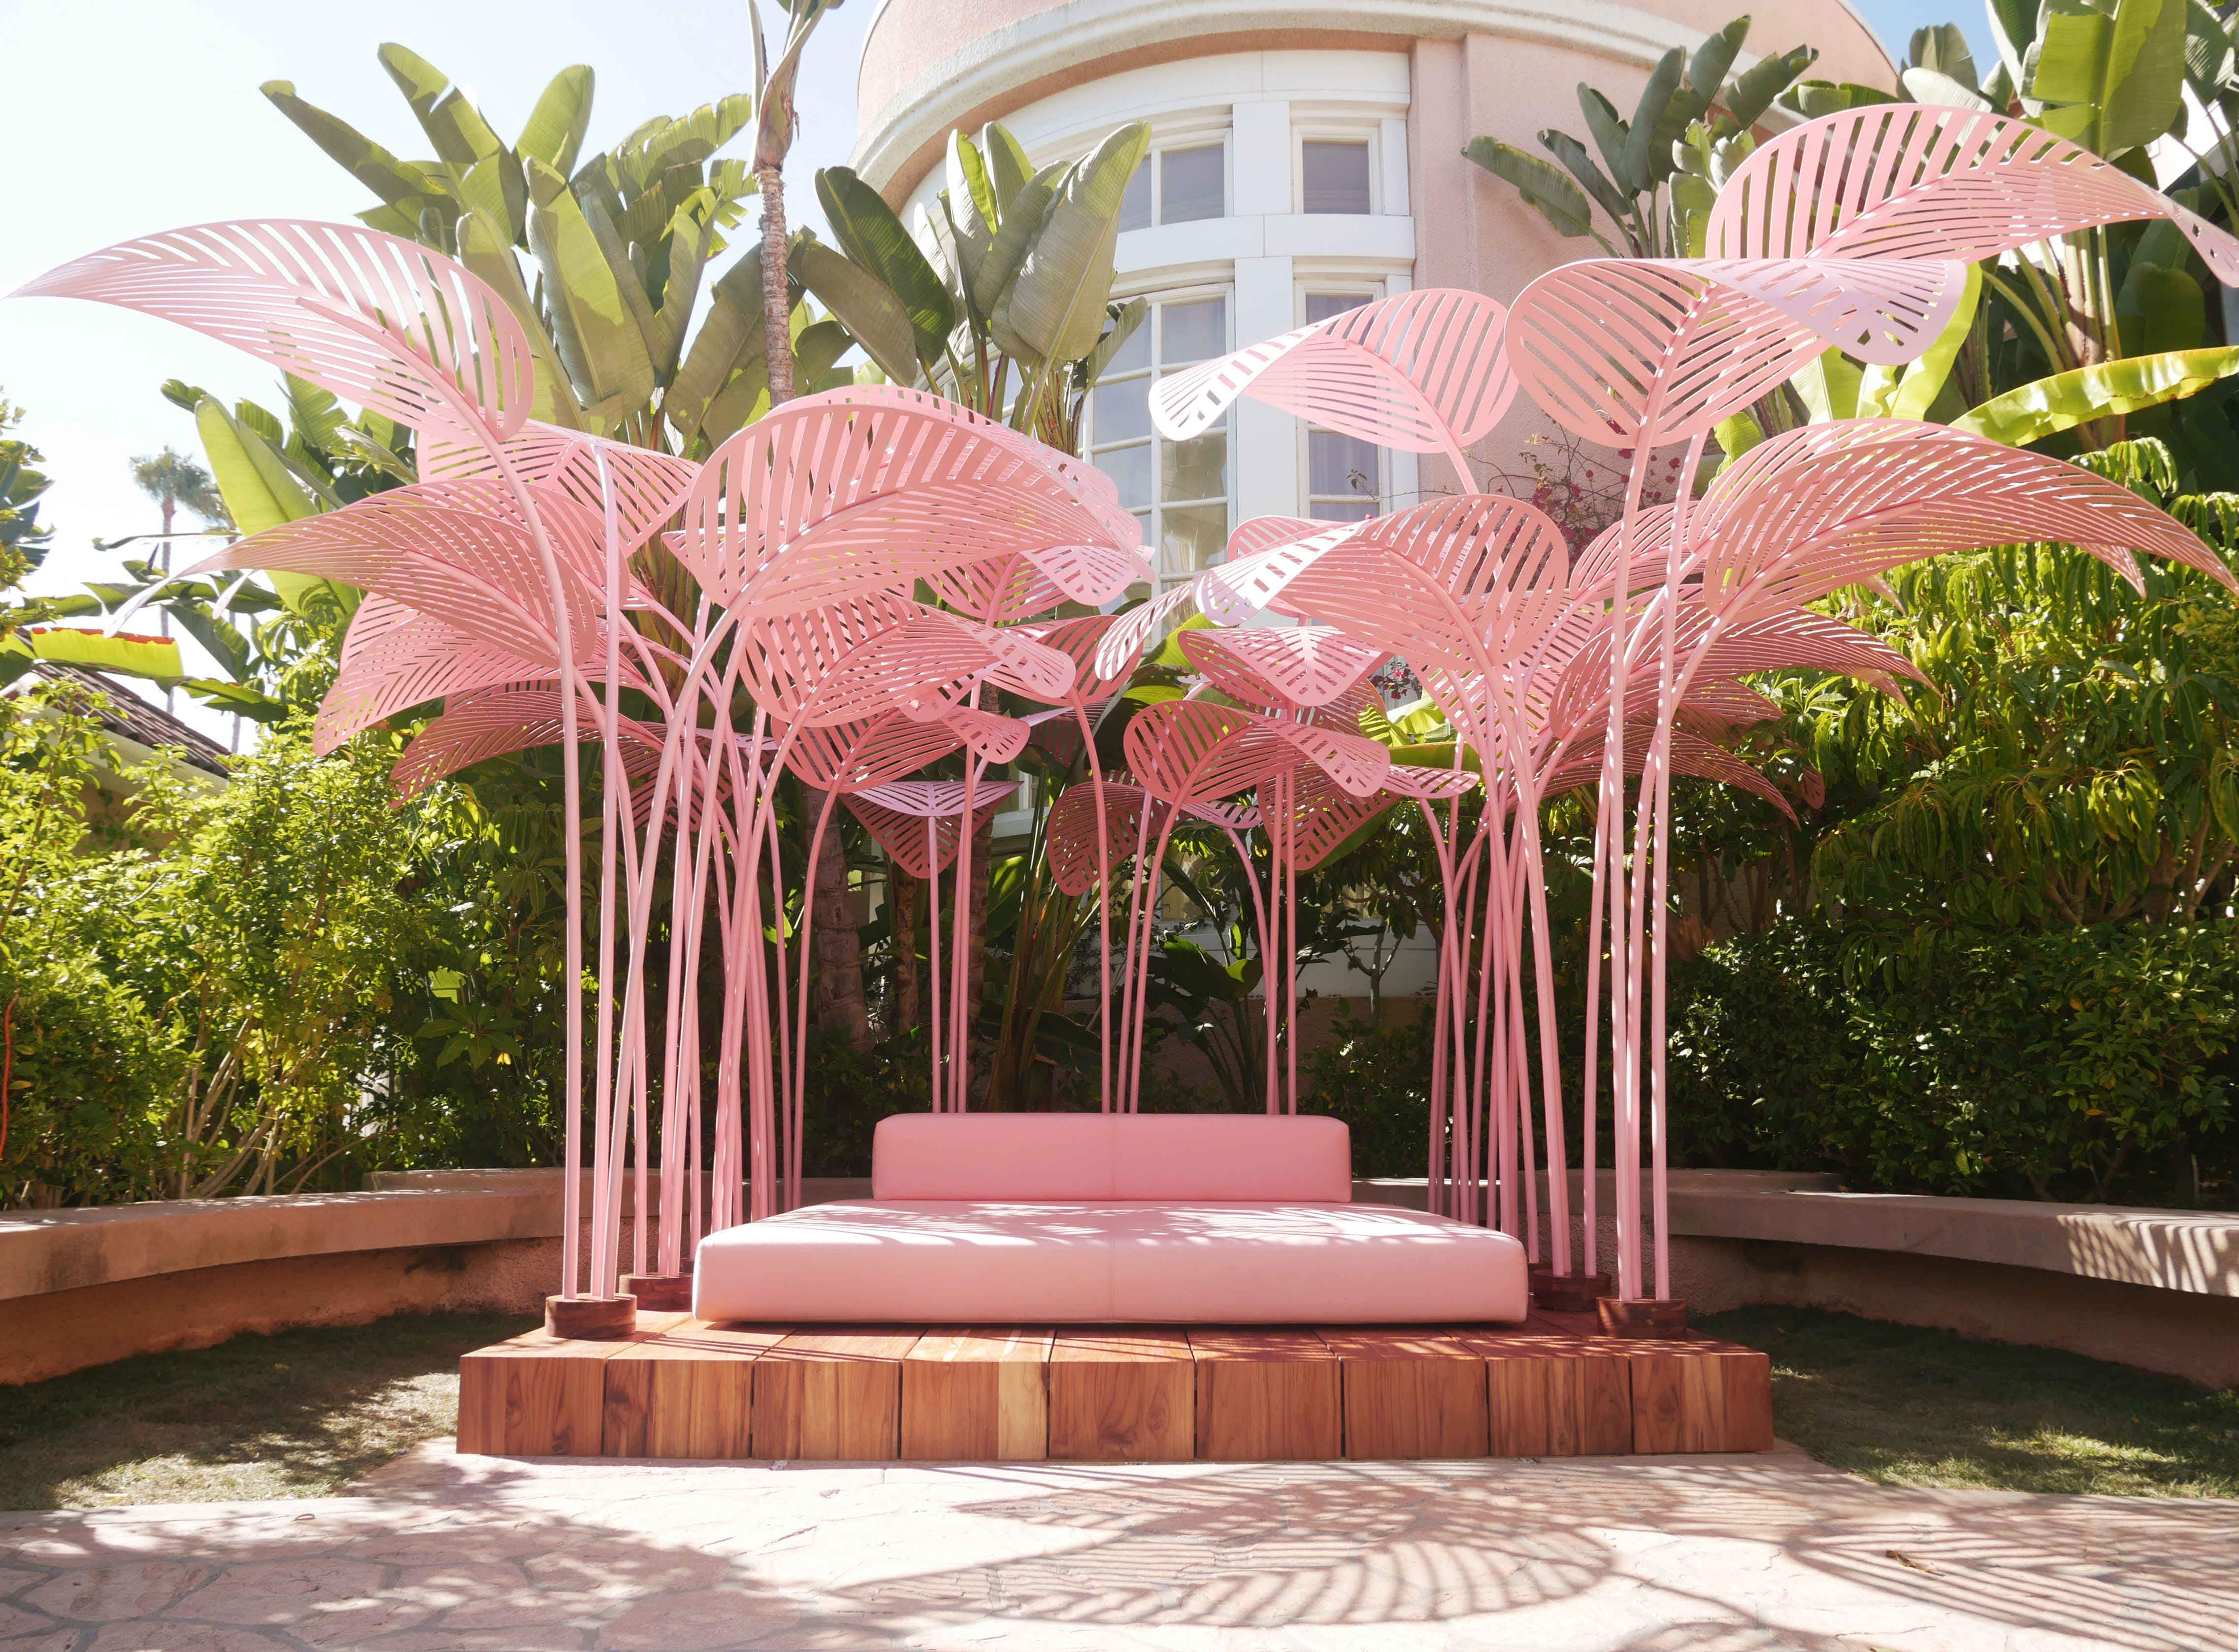 This gorgeous pink daybed is the ultimate relaxation stop at the Beverly Hills Hotel